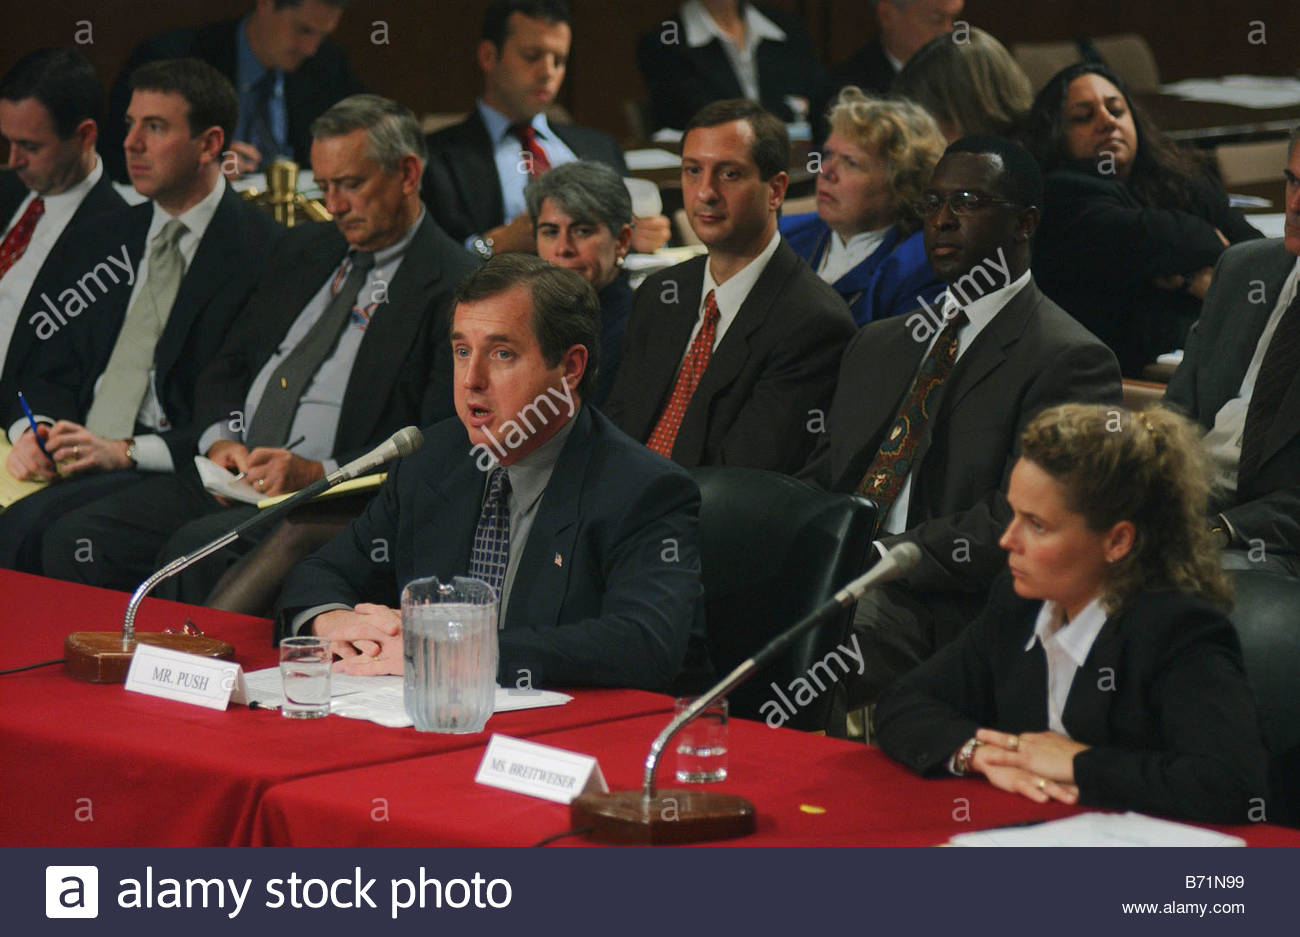 9 18 02 INVESTIGATION OF SEPT 11 INTELLIGENCE FAILURES Stephen Push treasurer of Families of September 11 Inc and - Stock Image